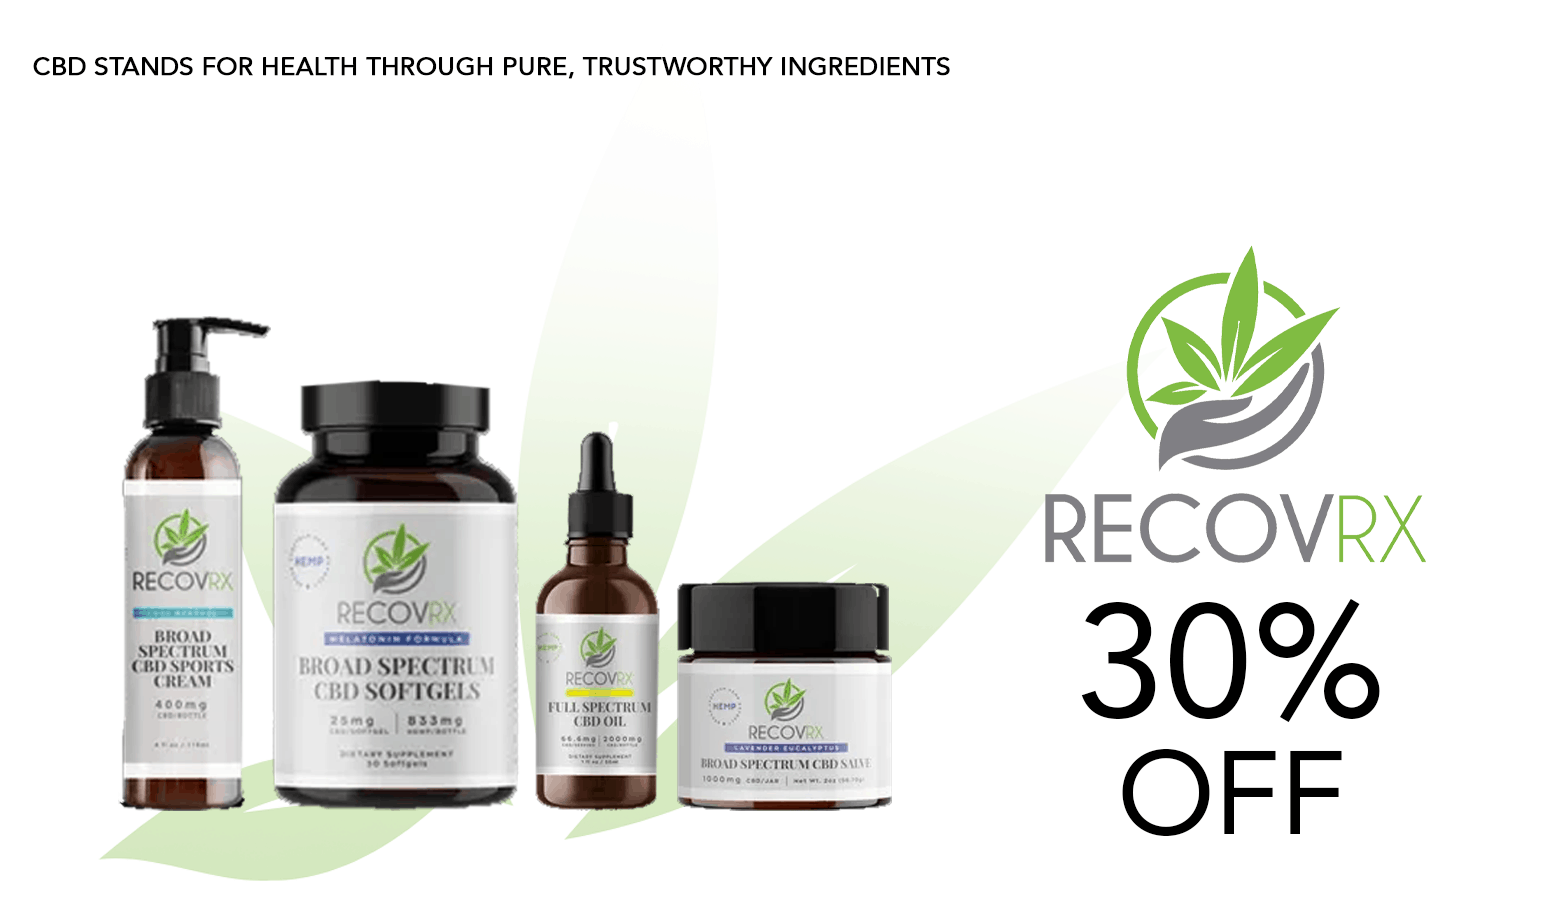 RECOVRX CBD Coupon Code Offer Website